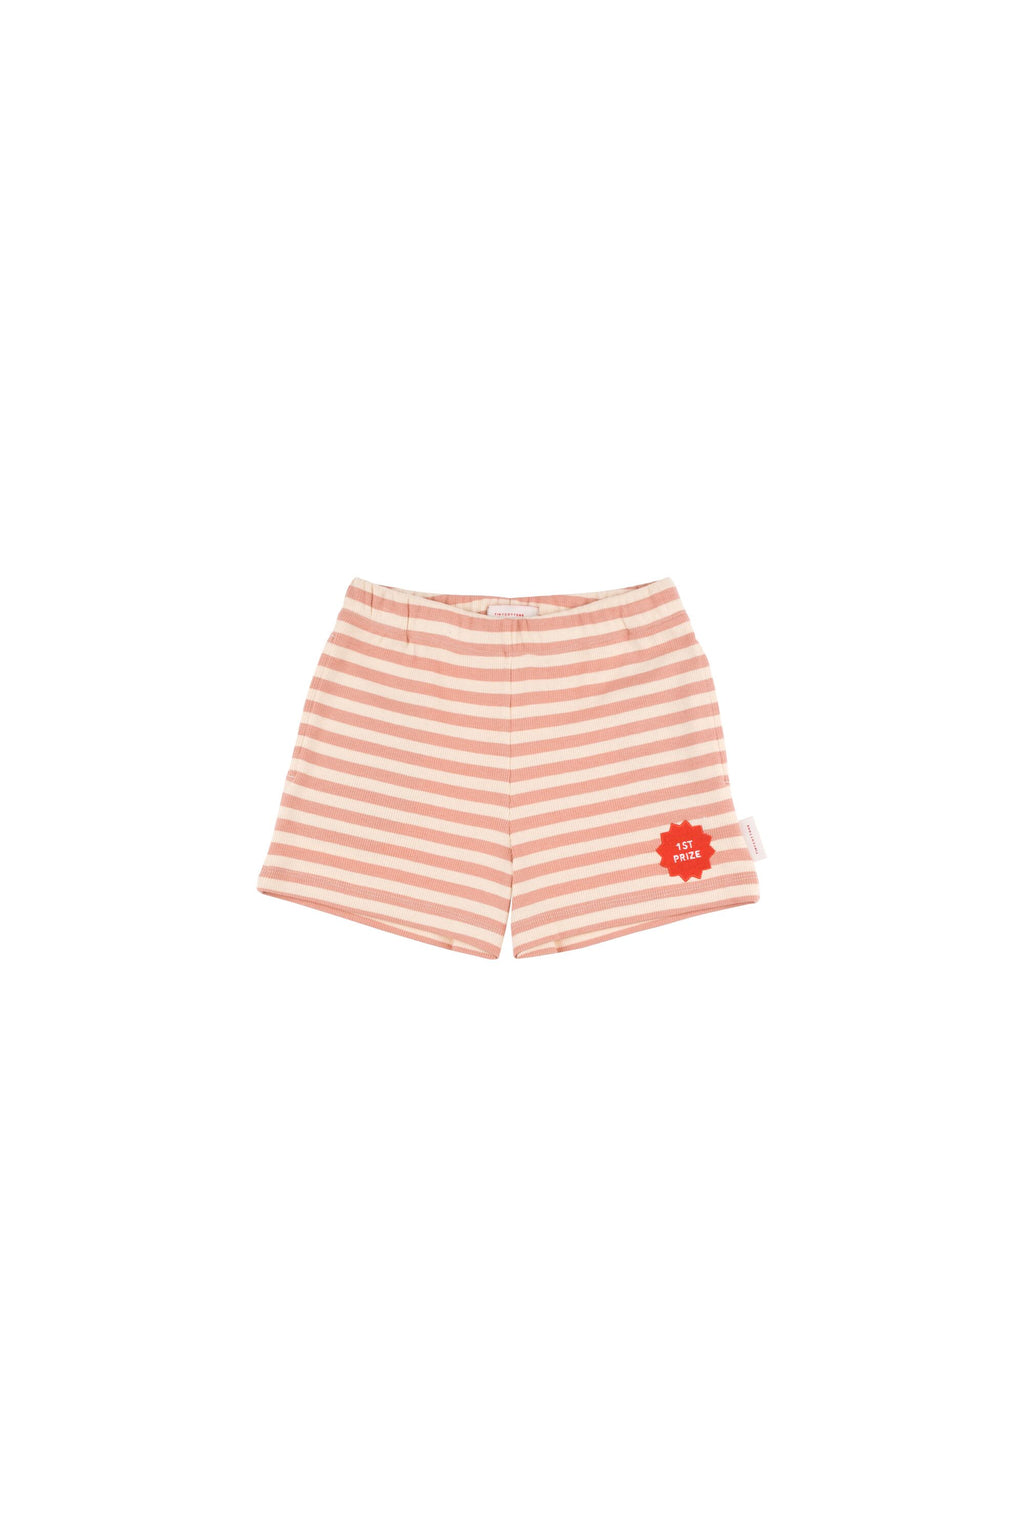 Designer Kids Fashion at Bloom Moda Online Children's Boutique - Tinycottons 1st Prize Shorts,  Shorts